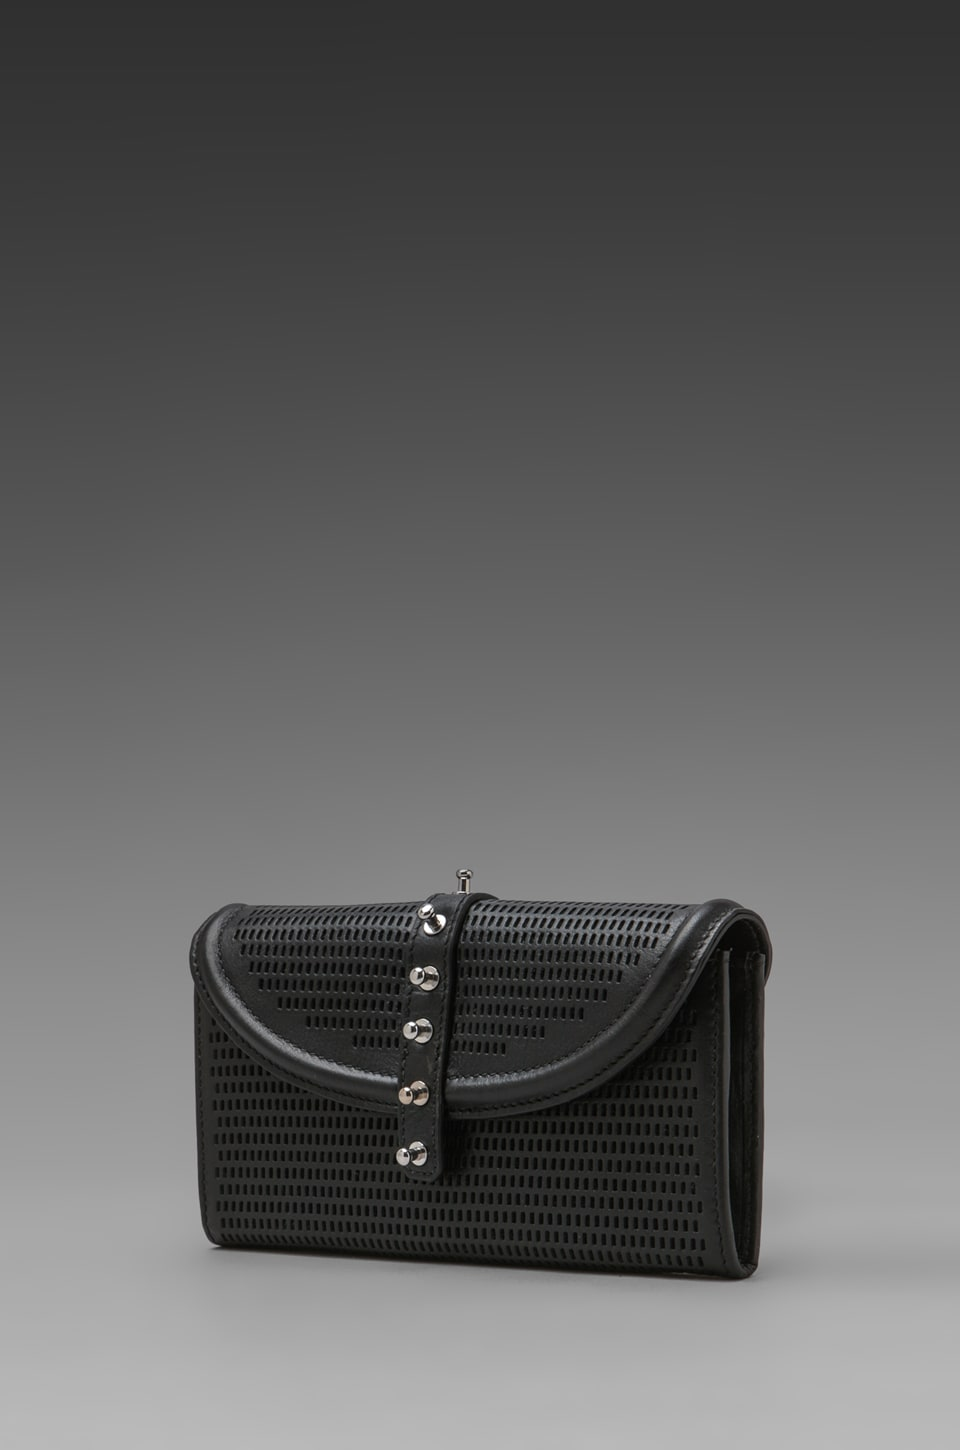 McQ Alexander McQueen Collar Stud Wallet in Jet Black